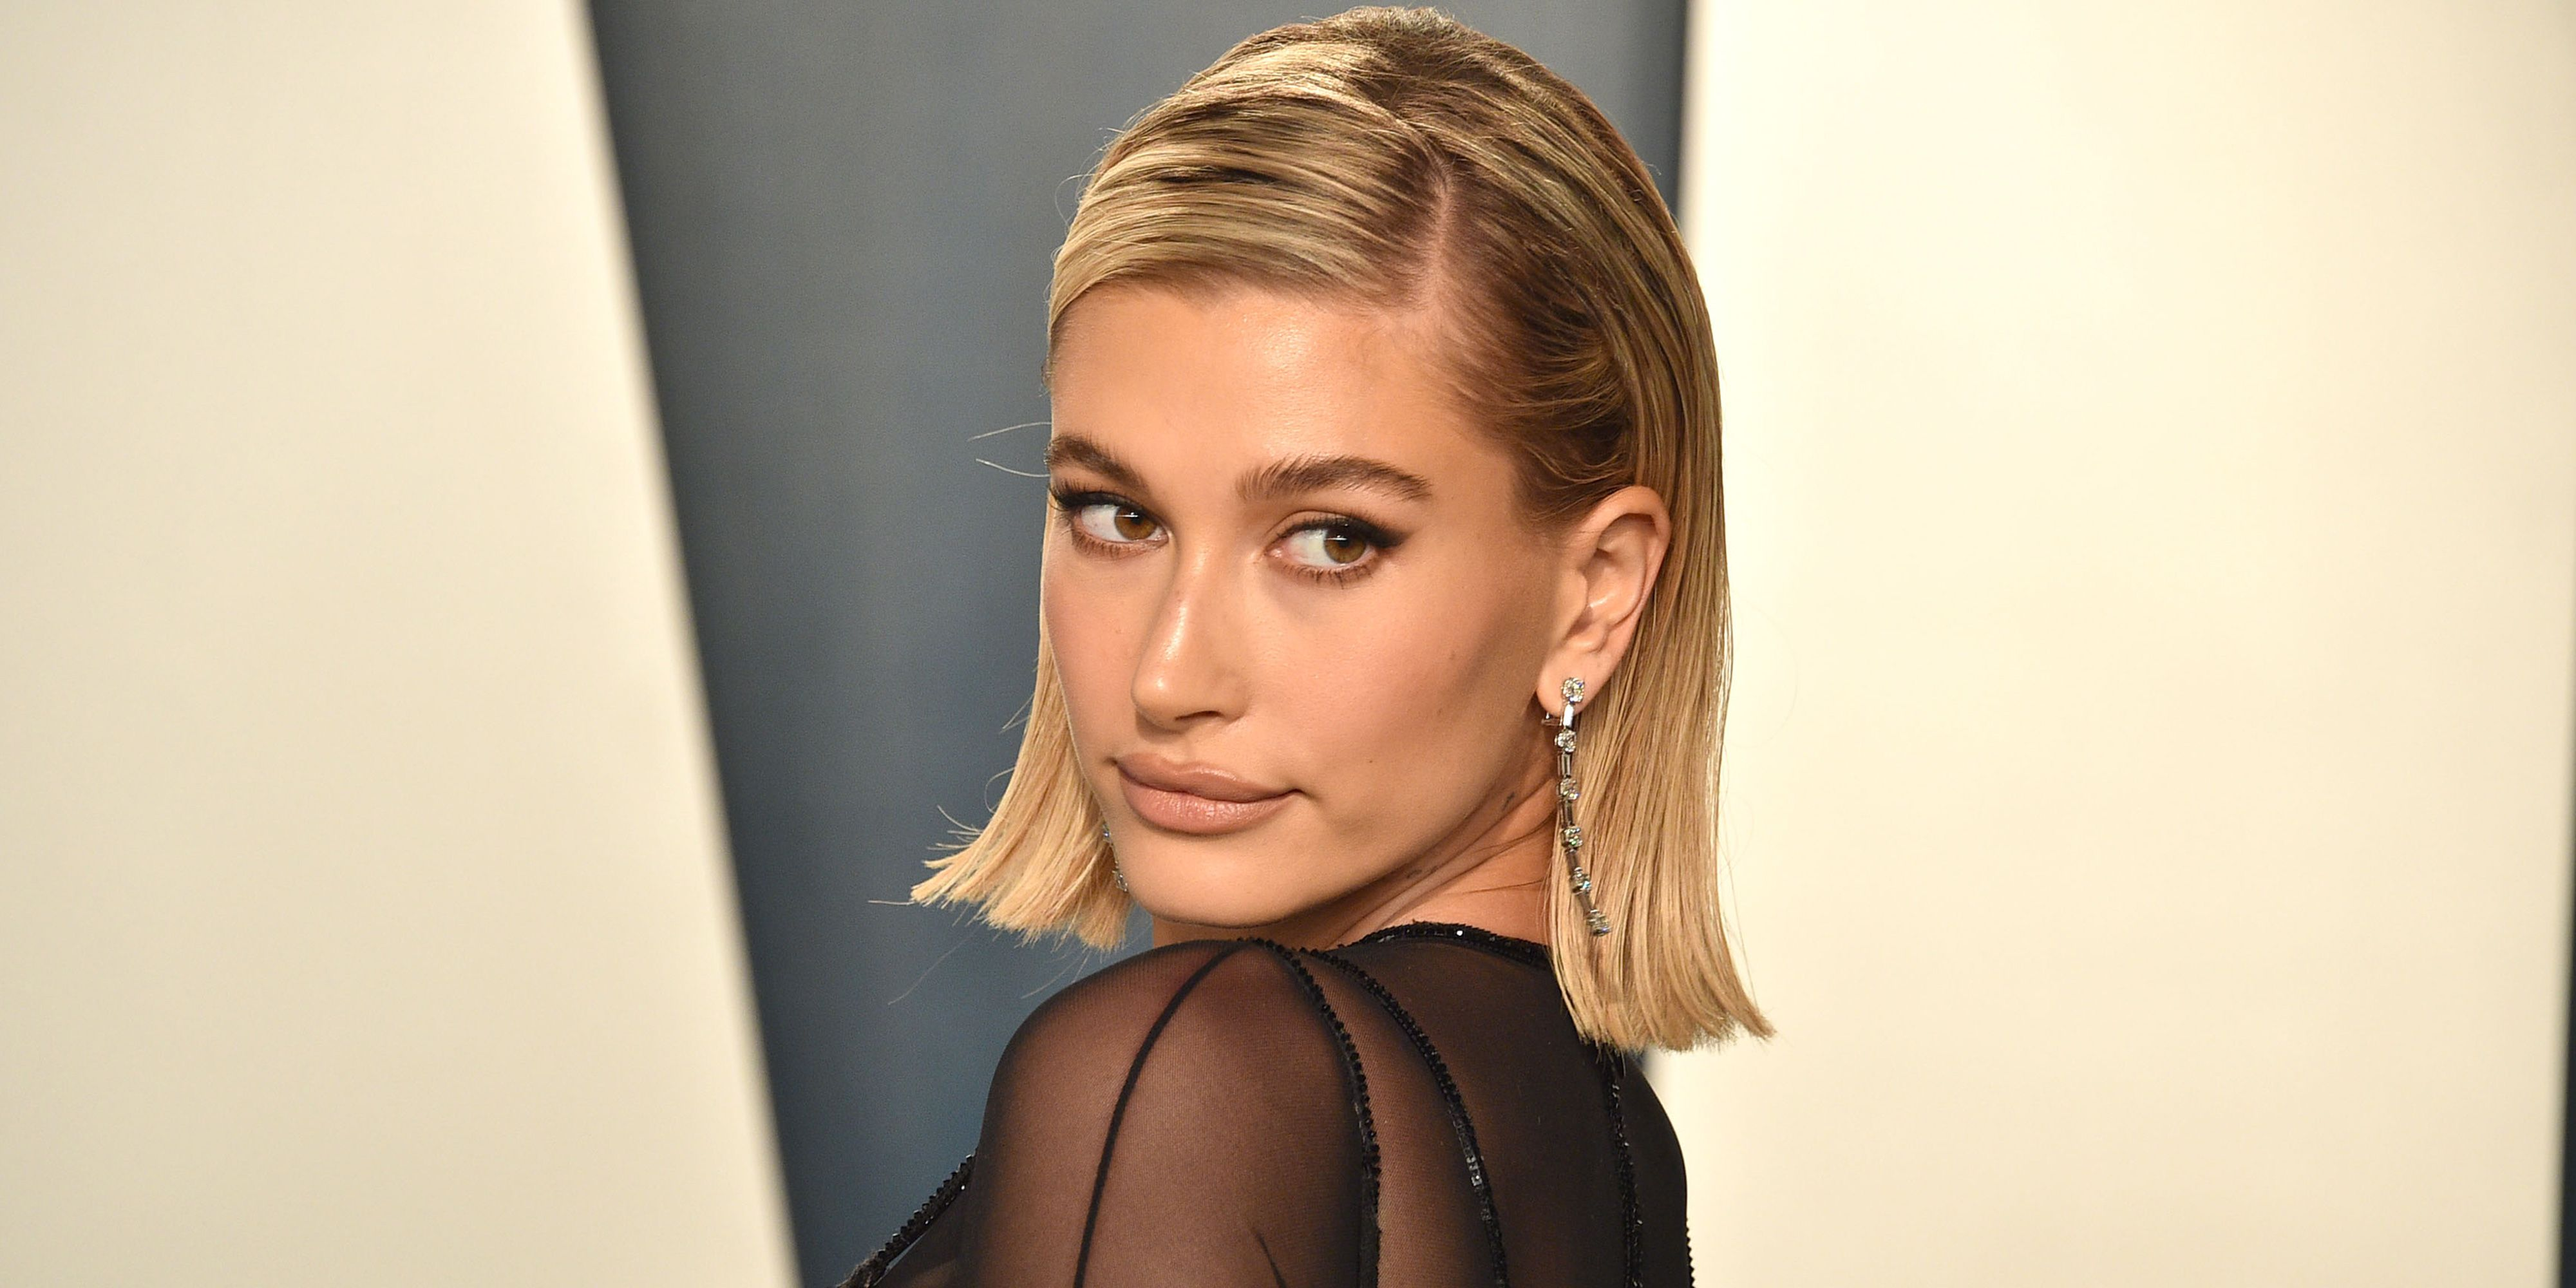 Hailey Bieber on face masks, paparazzi and how the pandemic has changed her